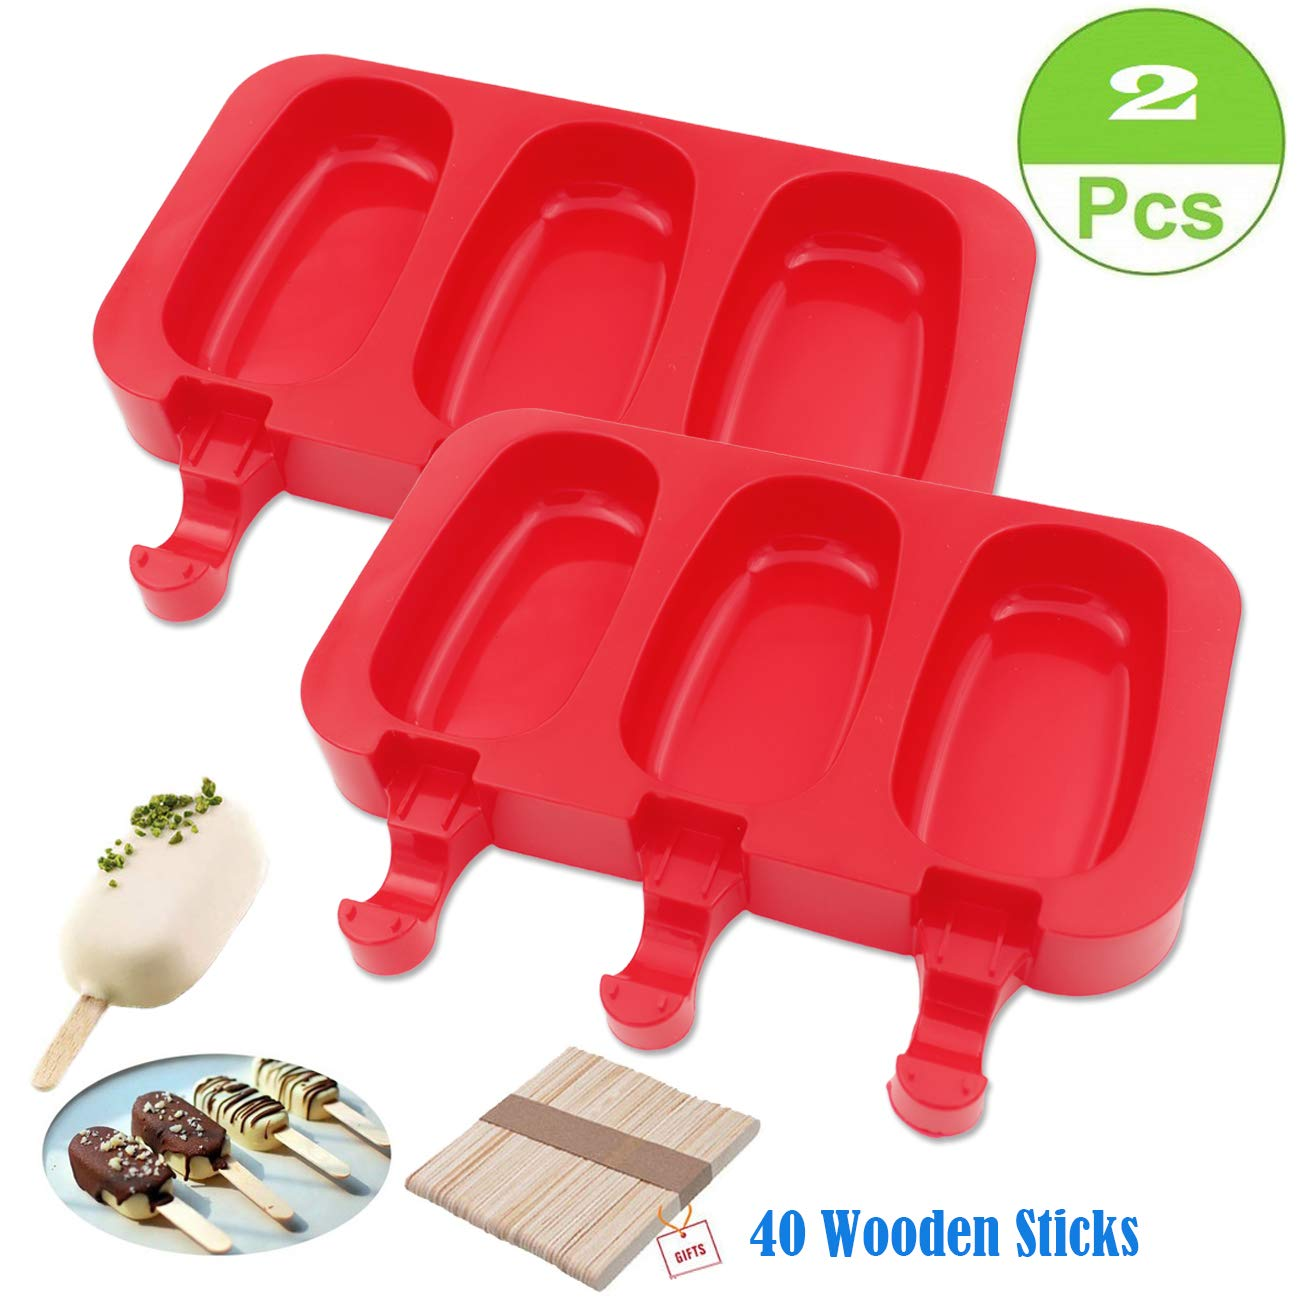 SAKOLLA Homemade Popsicle Silicone Molds with Lid, Ice Cream Bar Mold, 3 Cavities Silicone Ice Pop Mold with 40 Wooden Sticks, Set of 2 (Oval)